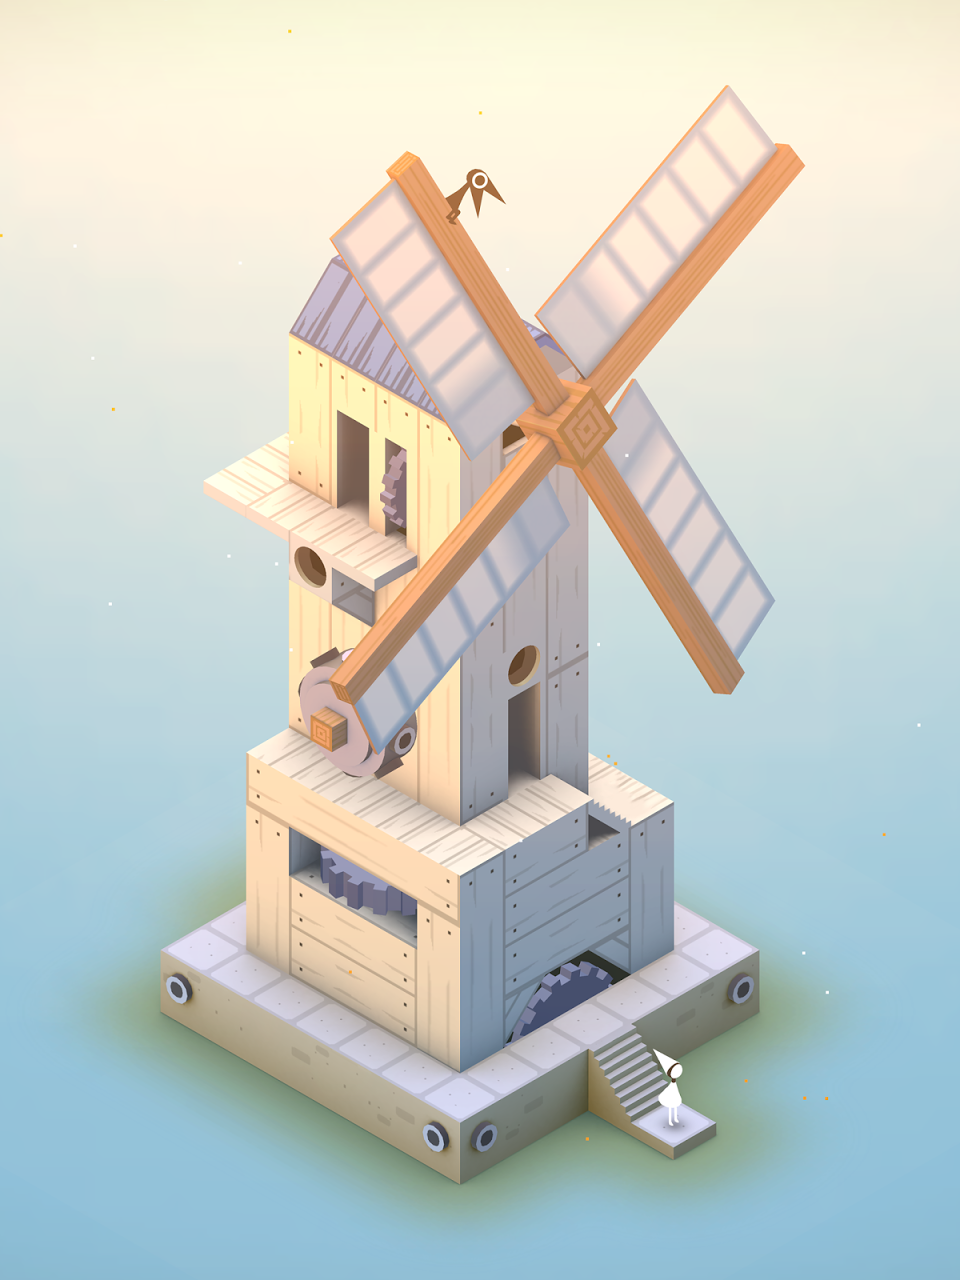 Monument Valley | Apkplaygame.com